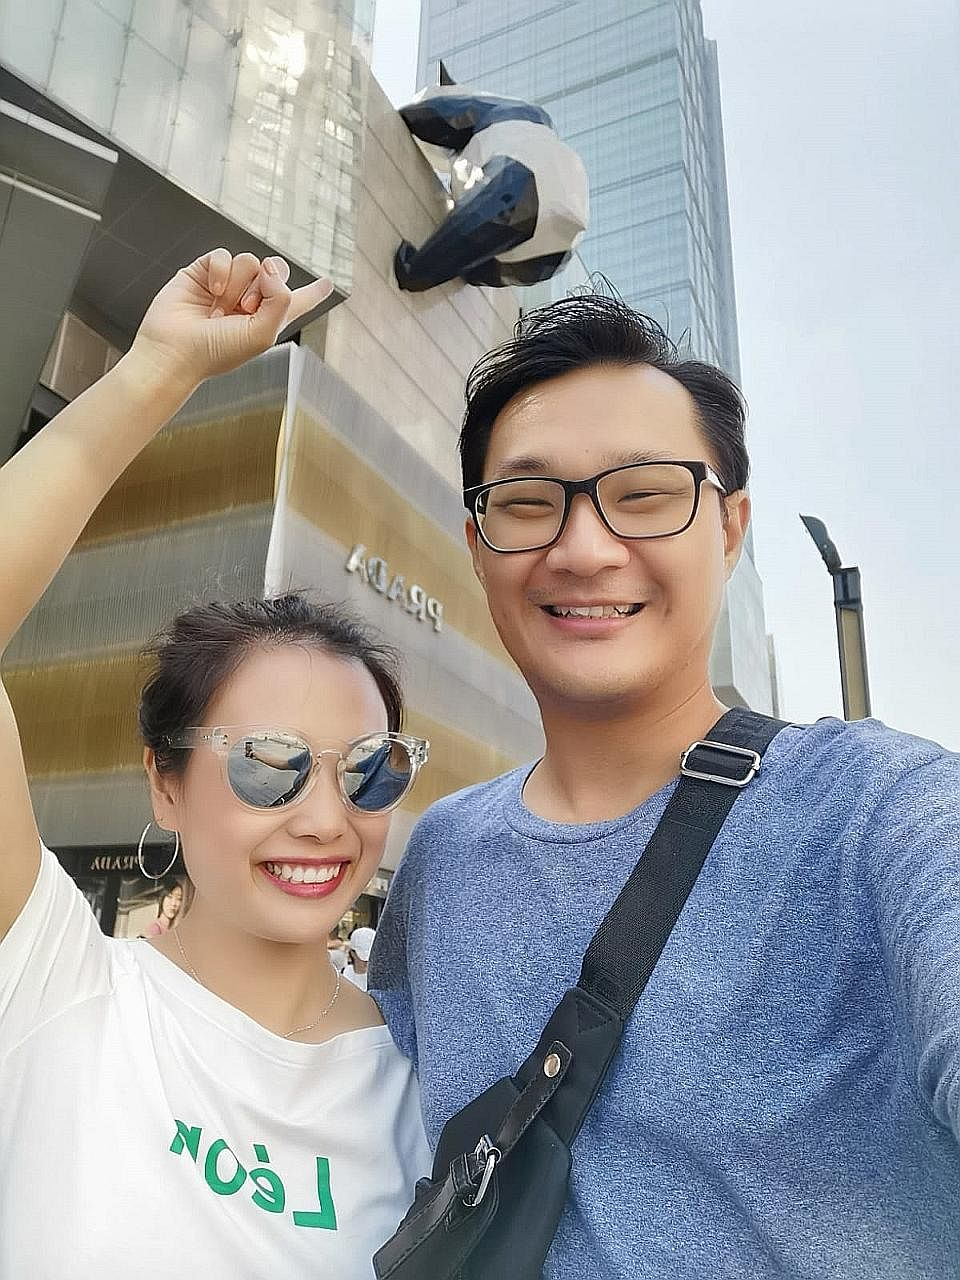 Mr Suen Tat Yam visited Chengdu with his then girlfriend Clara, who is now his wife (both left), in 2019 and hopes to visit again after the pandemic.